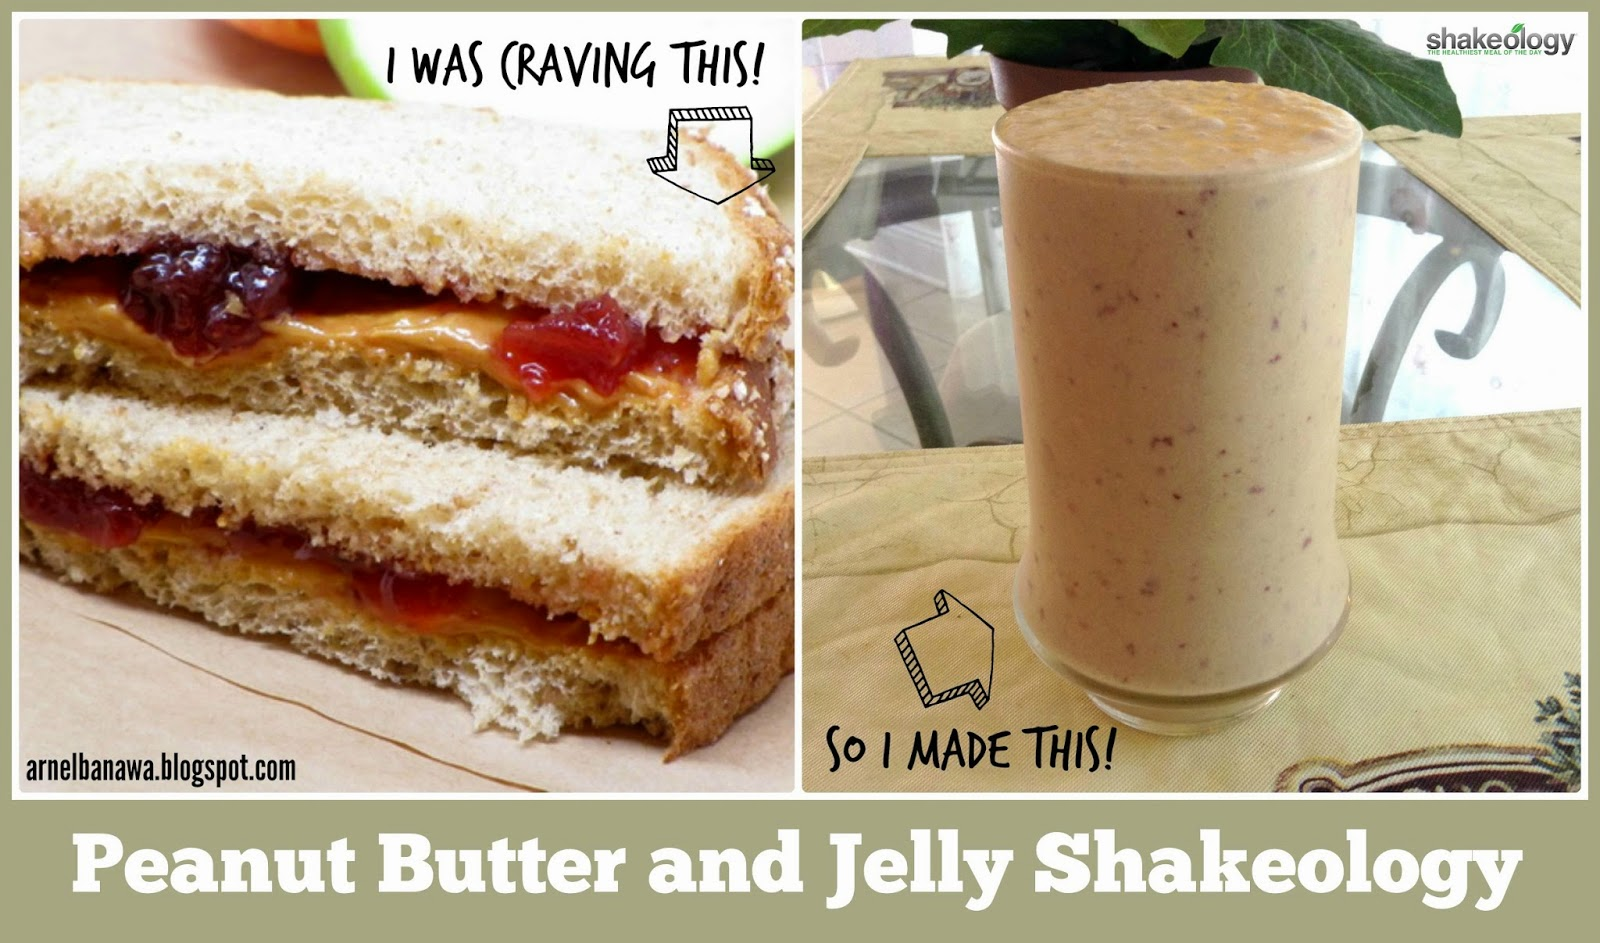 peanut butter and jelly Here is a nice photographic series from a very informative study conducted by wisegeek it includes peanut butter, sandwich and a wide range of other food you might consume.